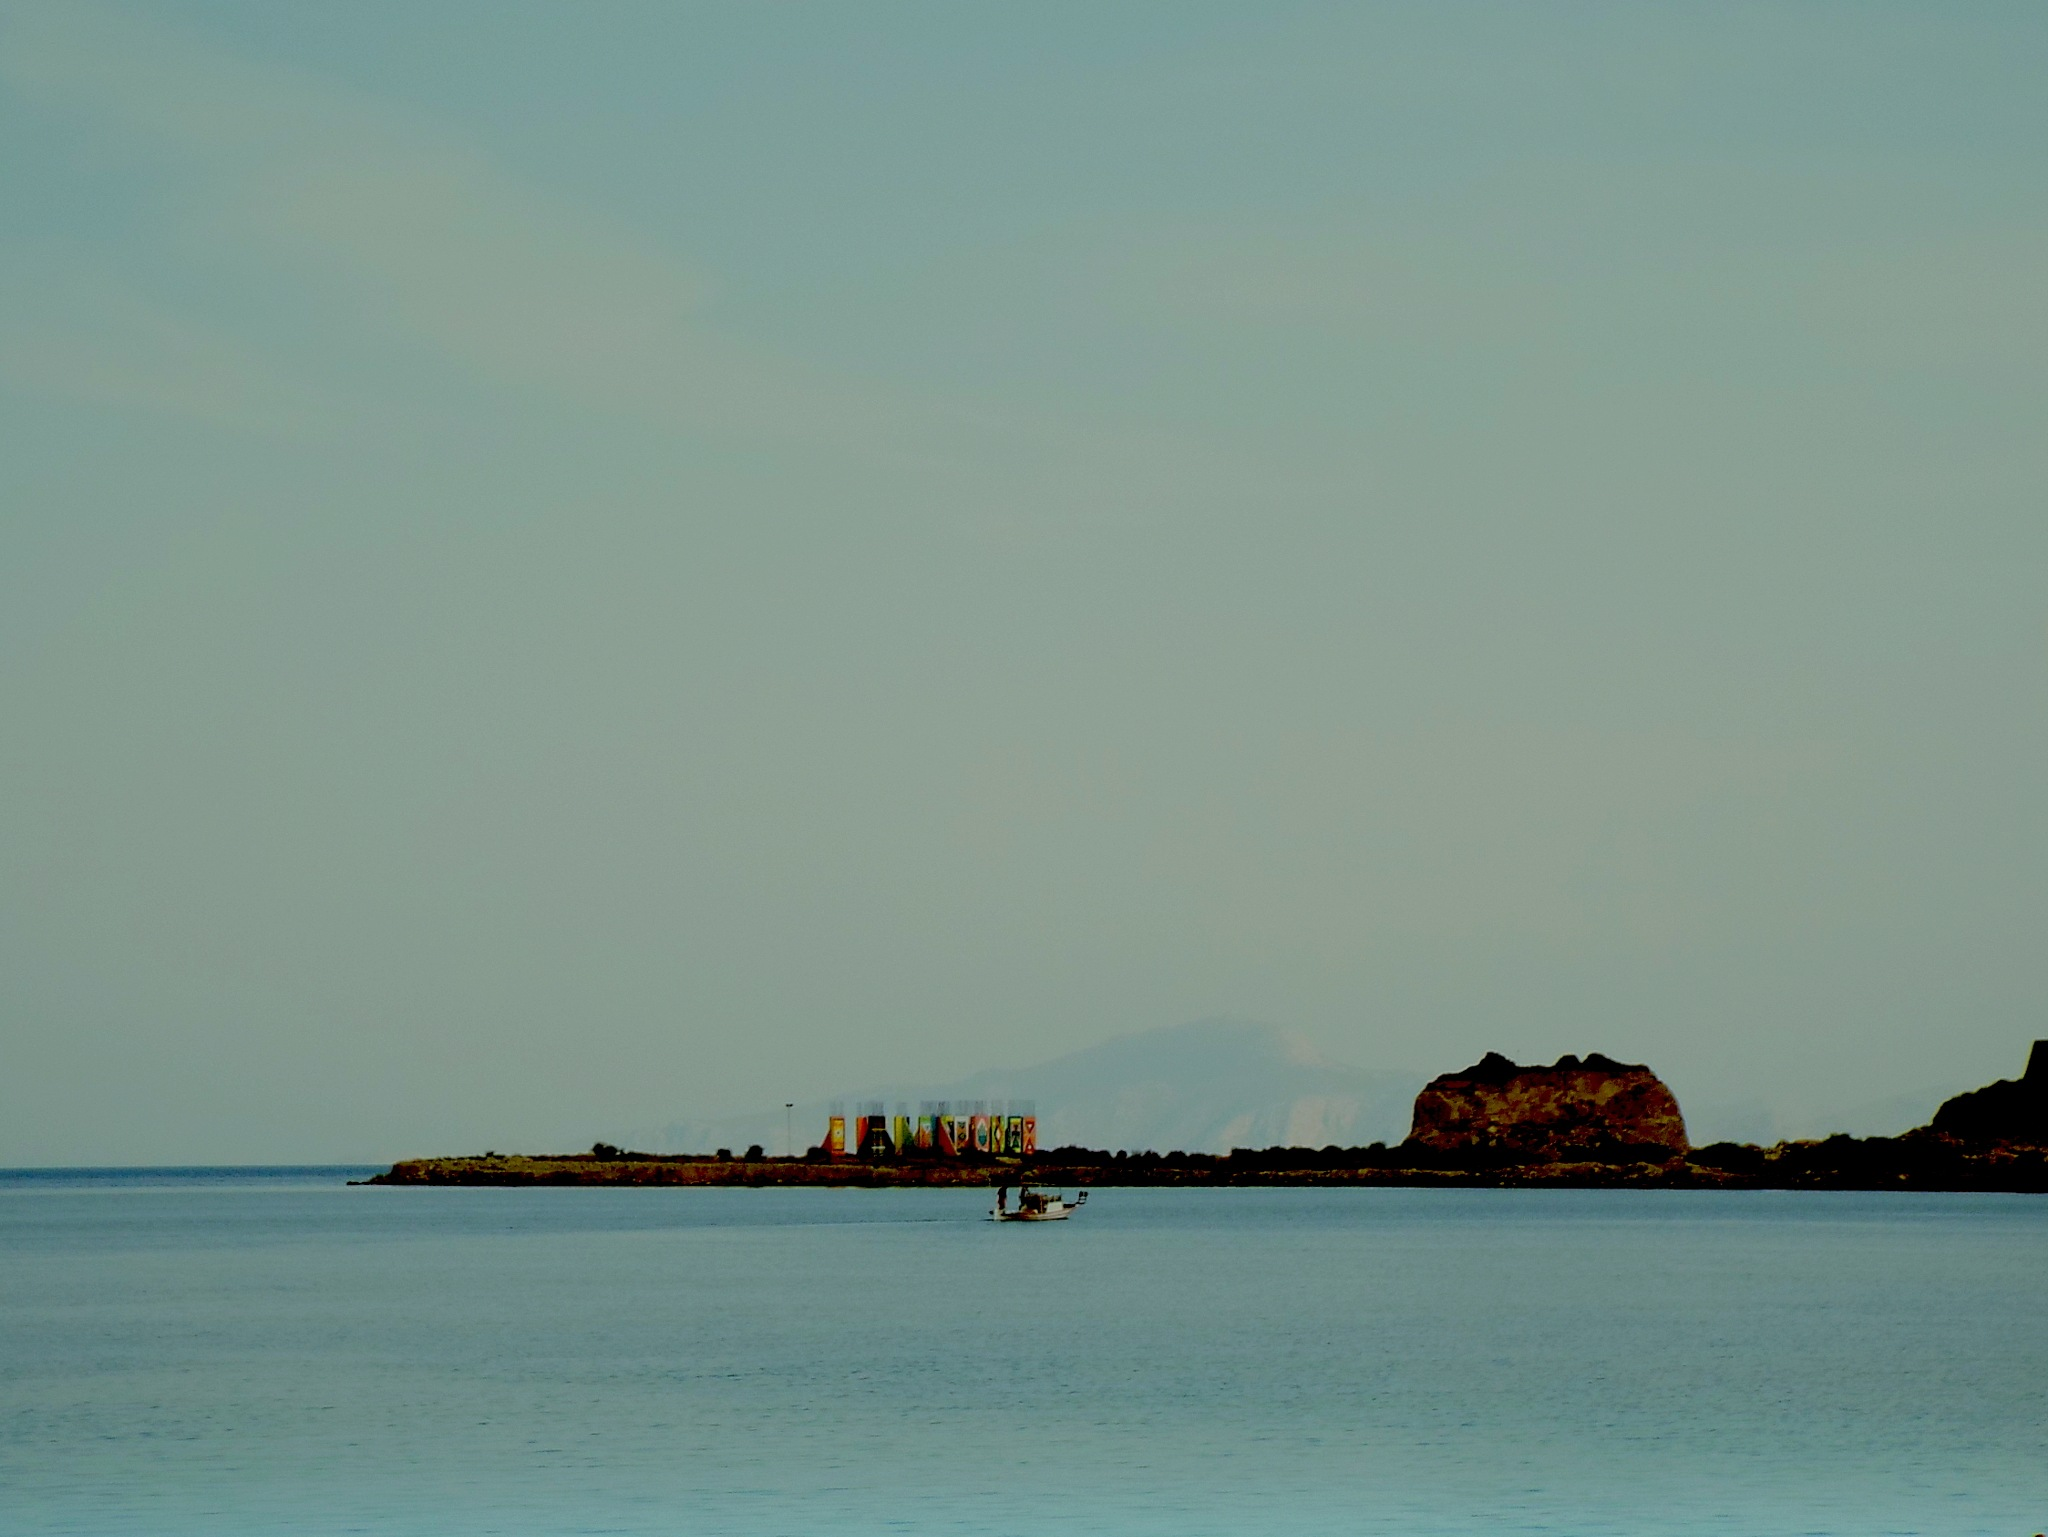 A VIEW  OF DATCHA BAY FROM THE PORT by Akin Saner